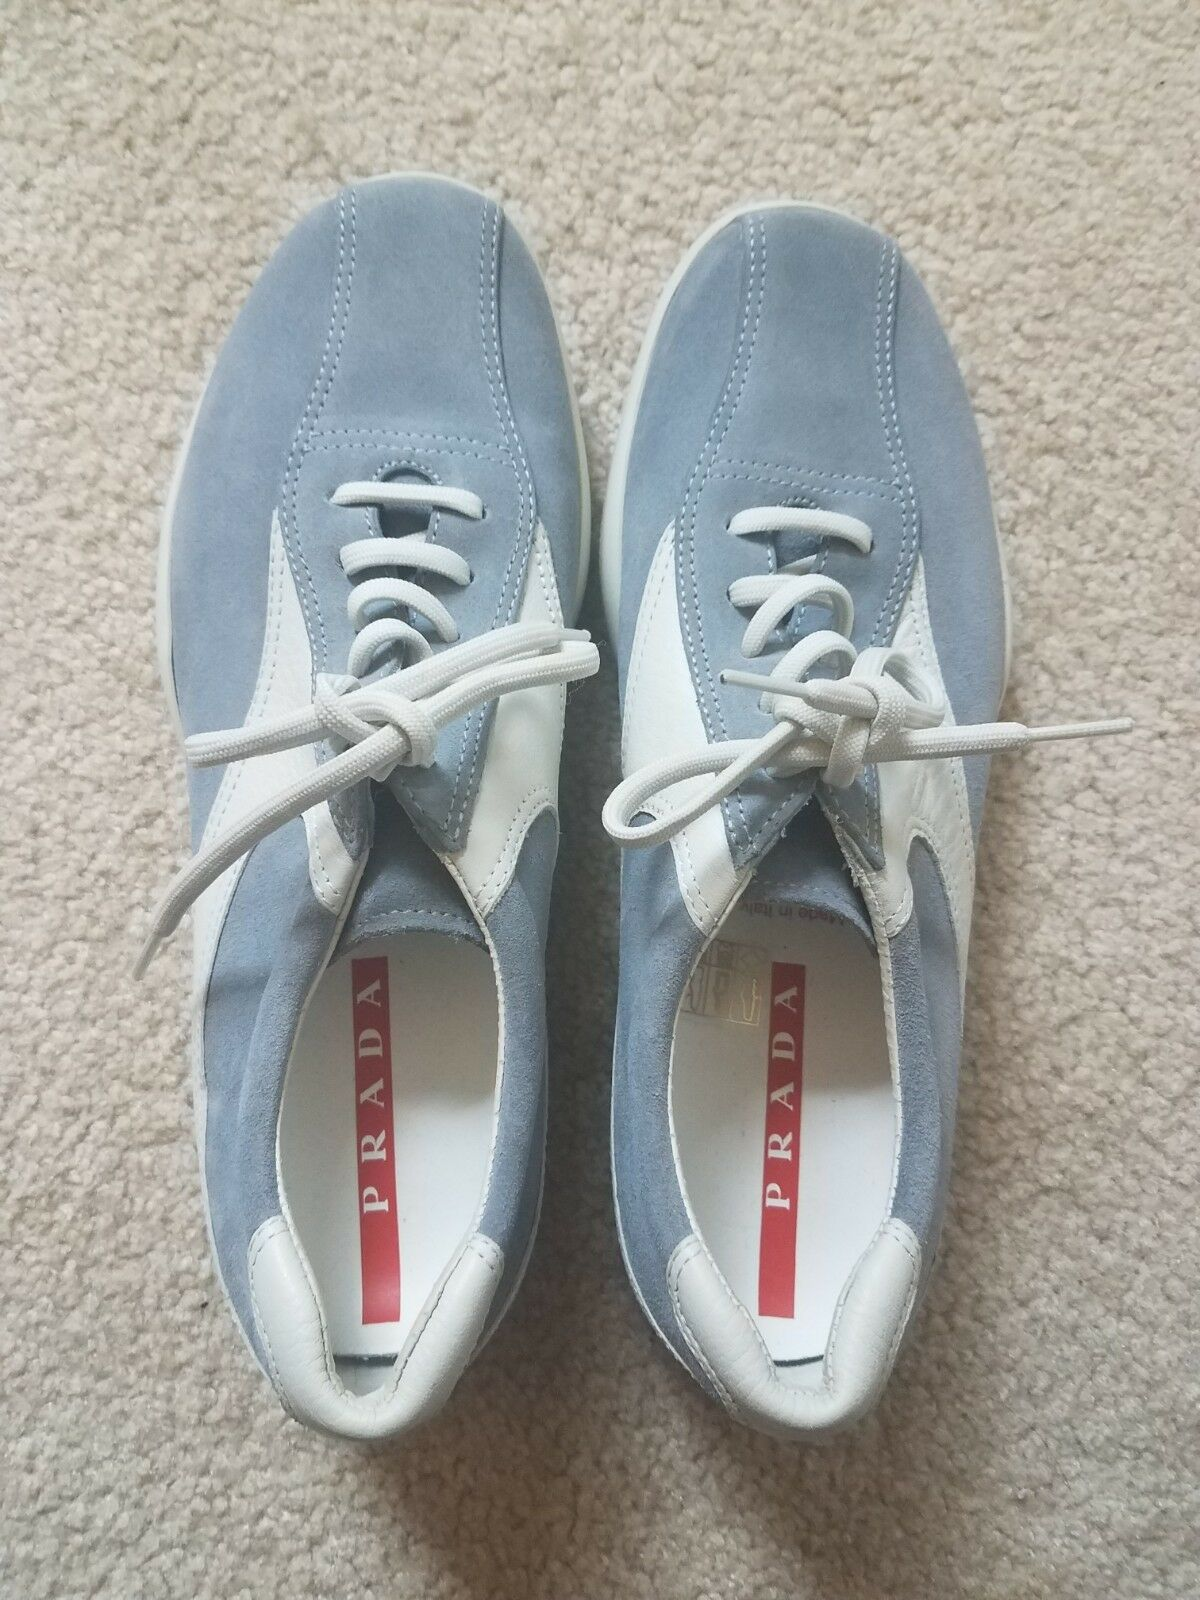 Womens' Prada Sneakers, bluee and White Leather, Mint Condition